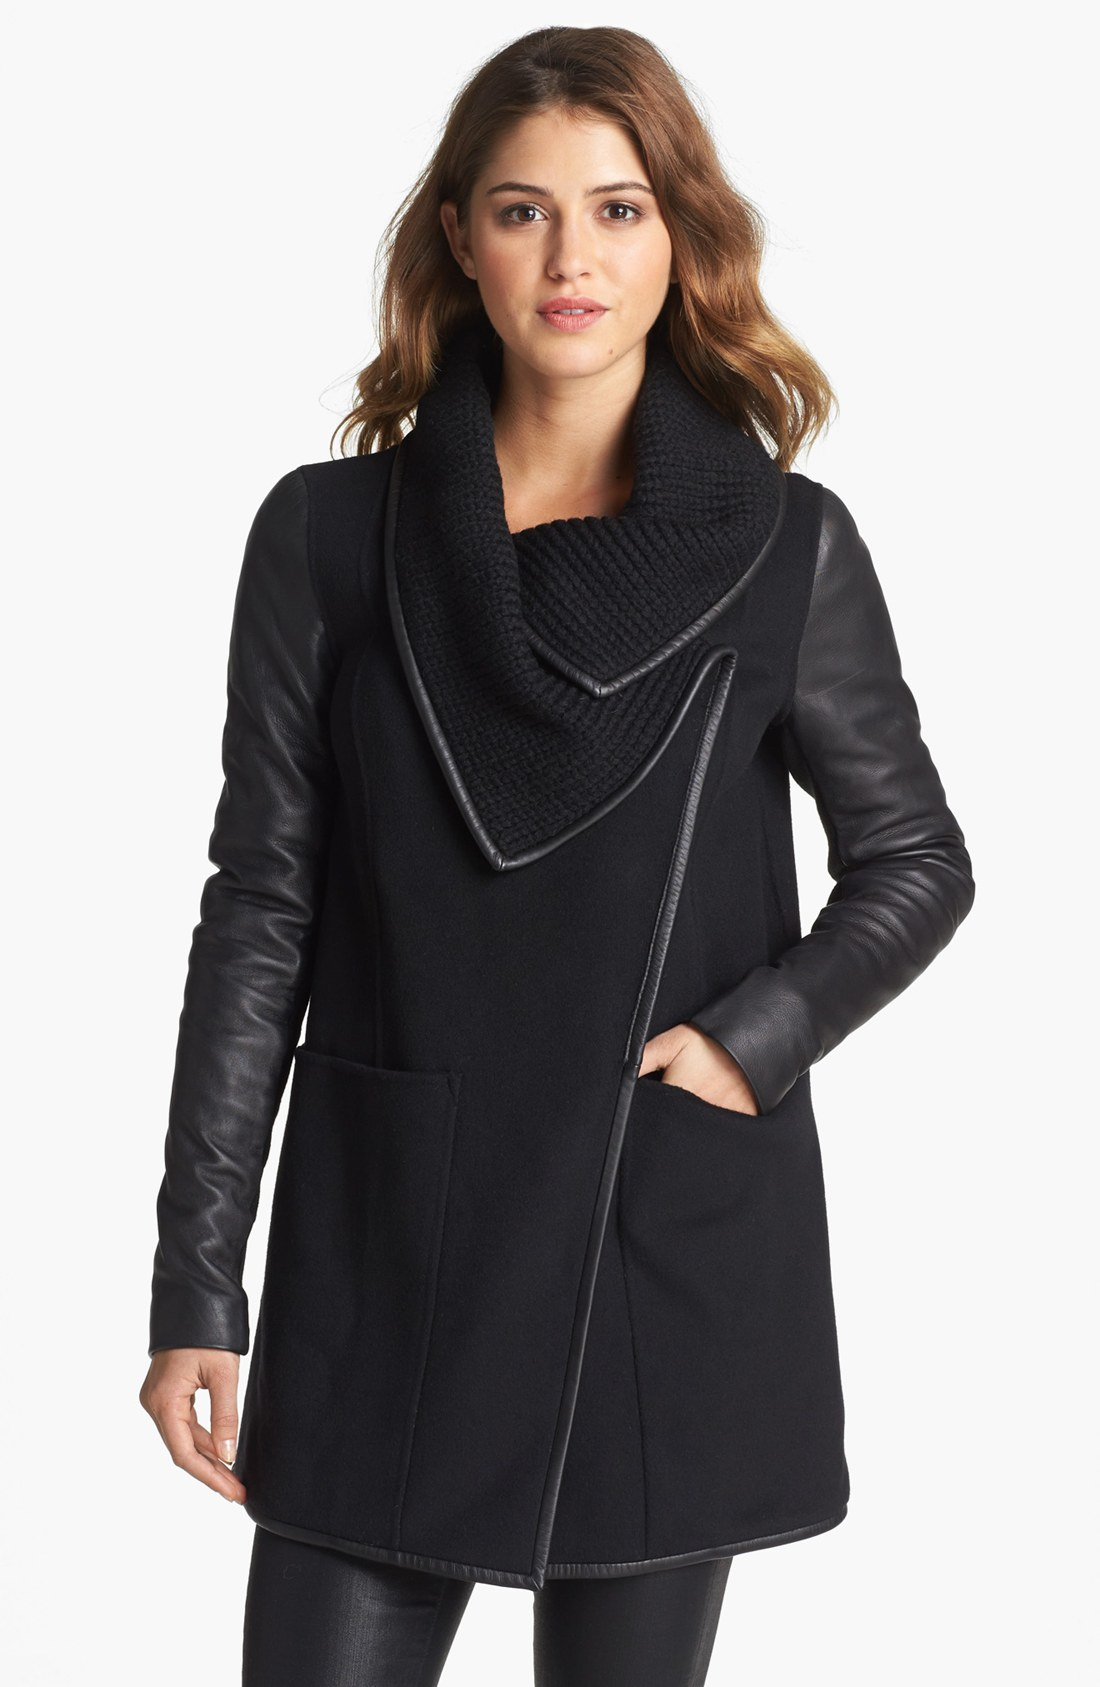 Shop affordable, unique leather sleeve black coat designed by top fashion designers worldwide. Discover more latest collections of Outerwear at shopnow-bqimqrqk.tk